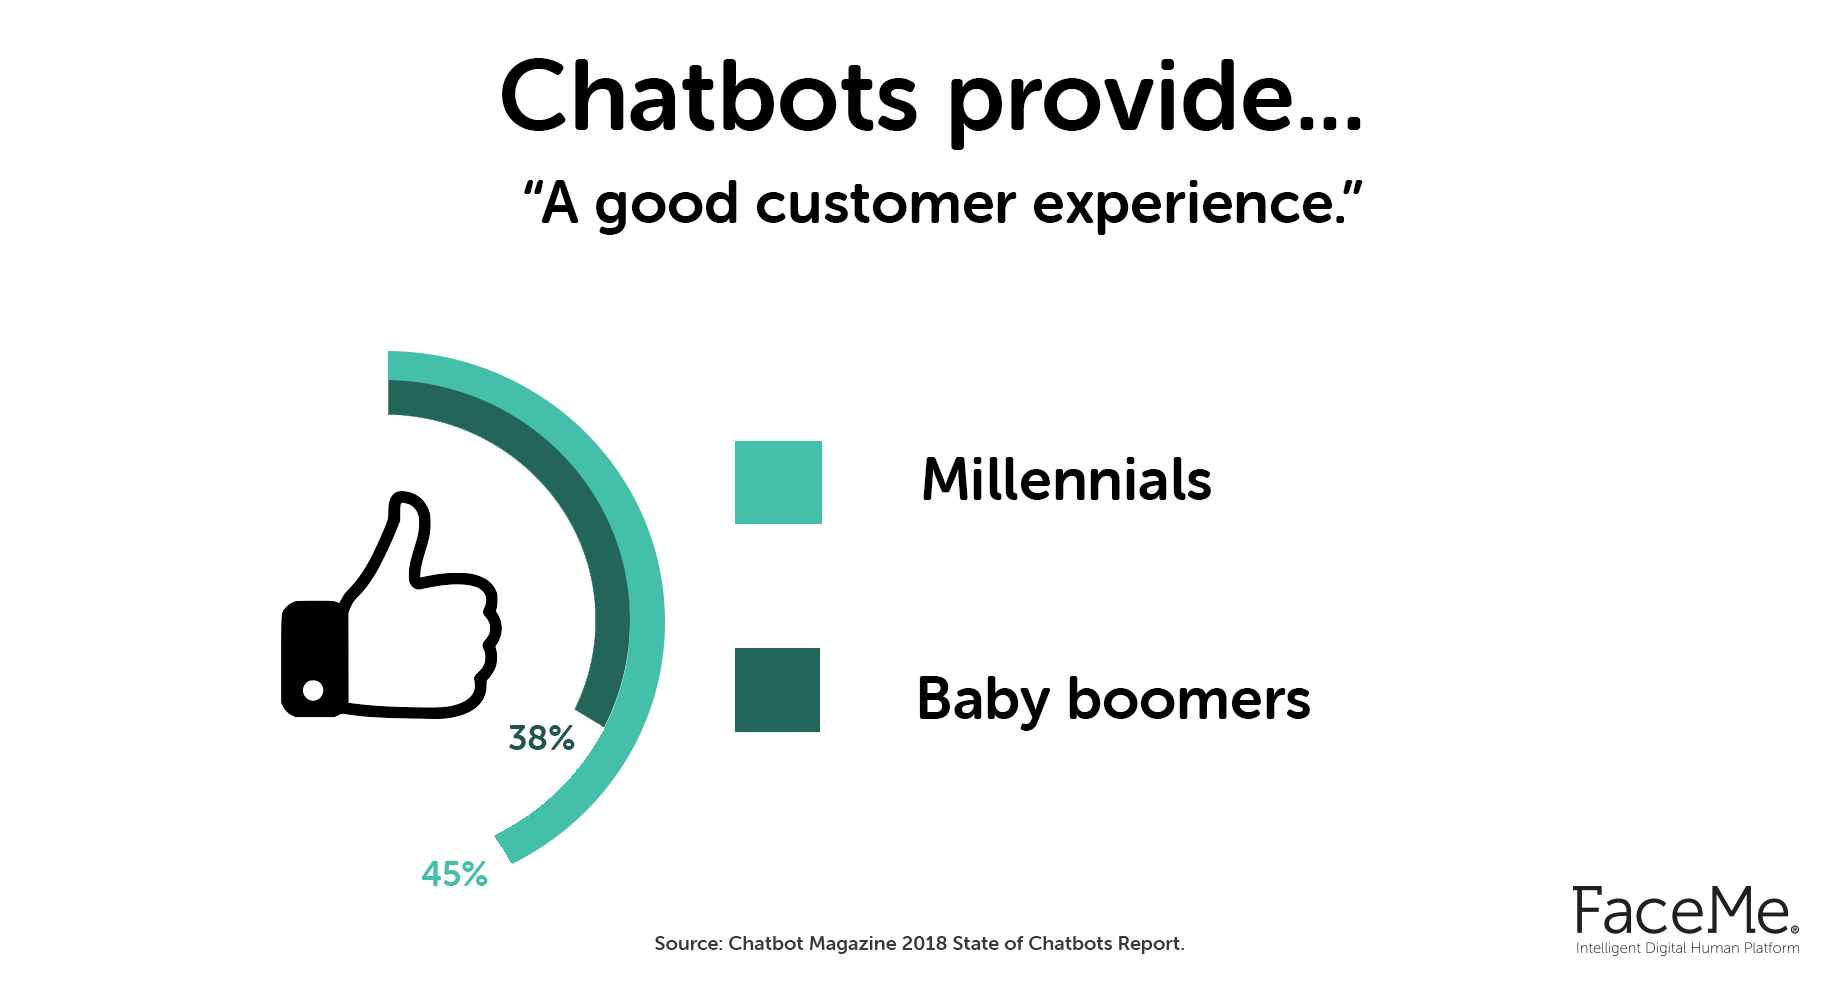 Do chatbots provide a good customer experience?